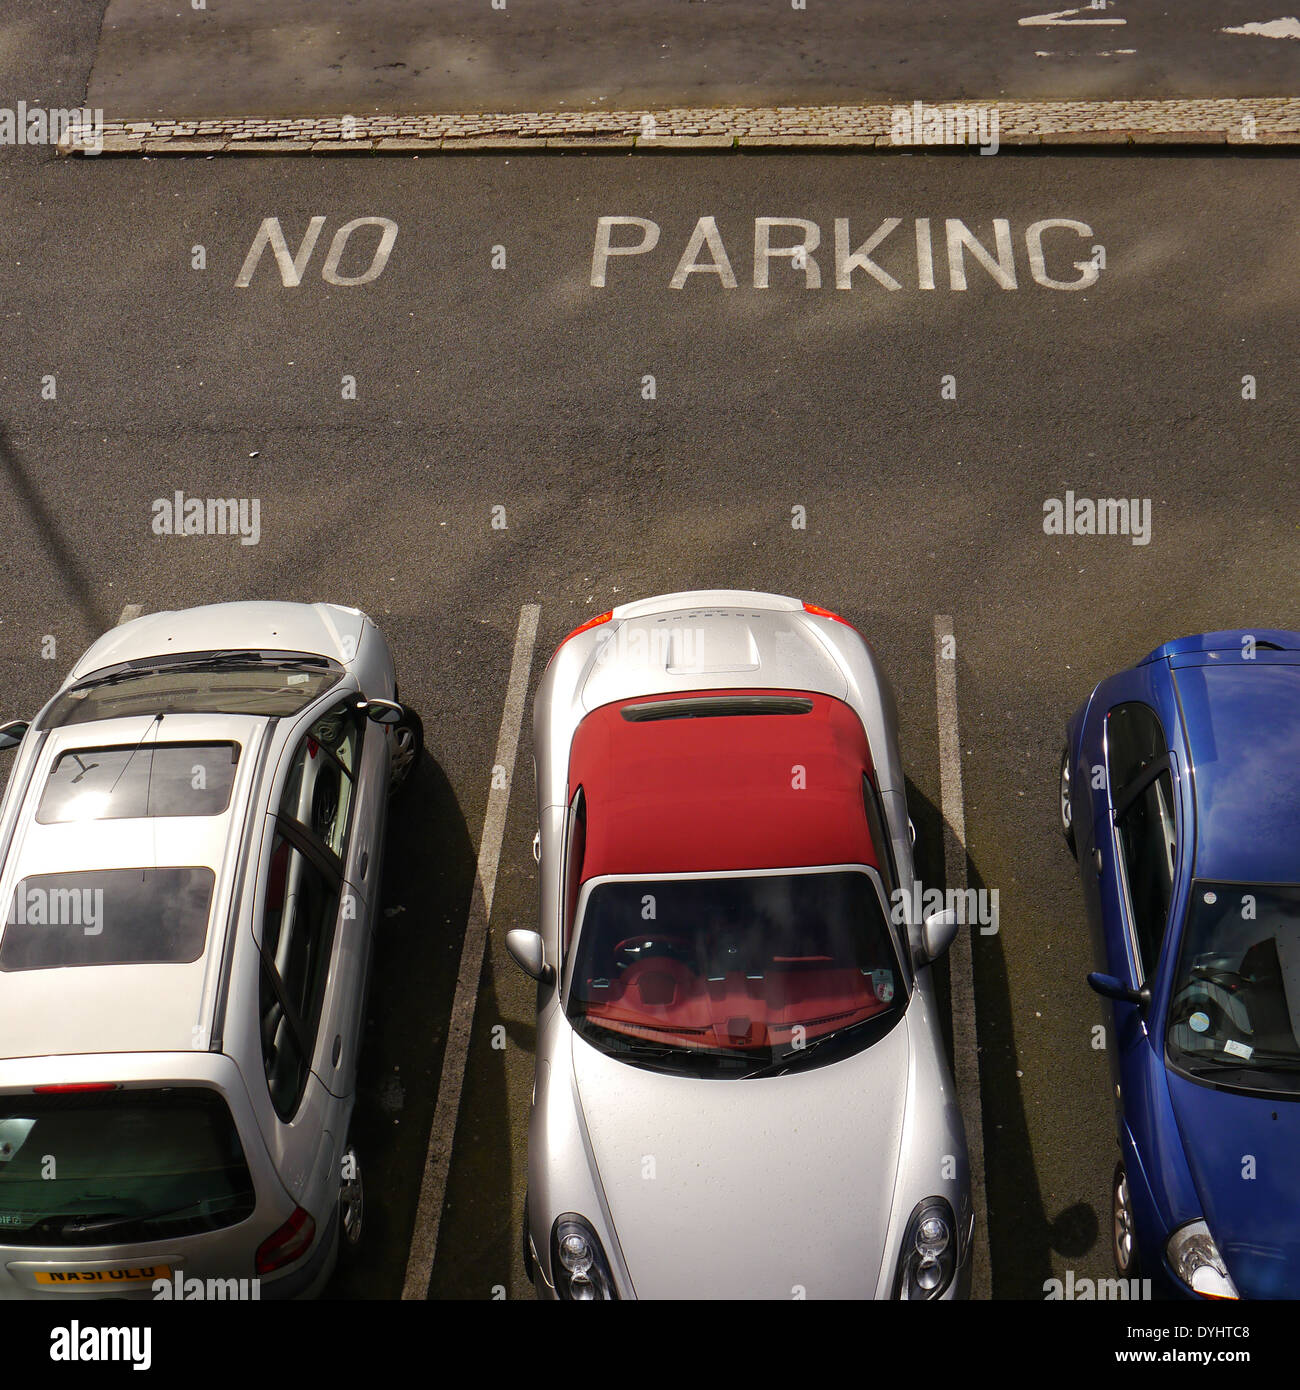 Bird's eye view of parked cars in car park, set against 'No Parking' sign, Newcastle upon Tyne, England, UK - Stock Image